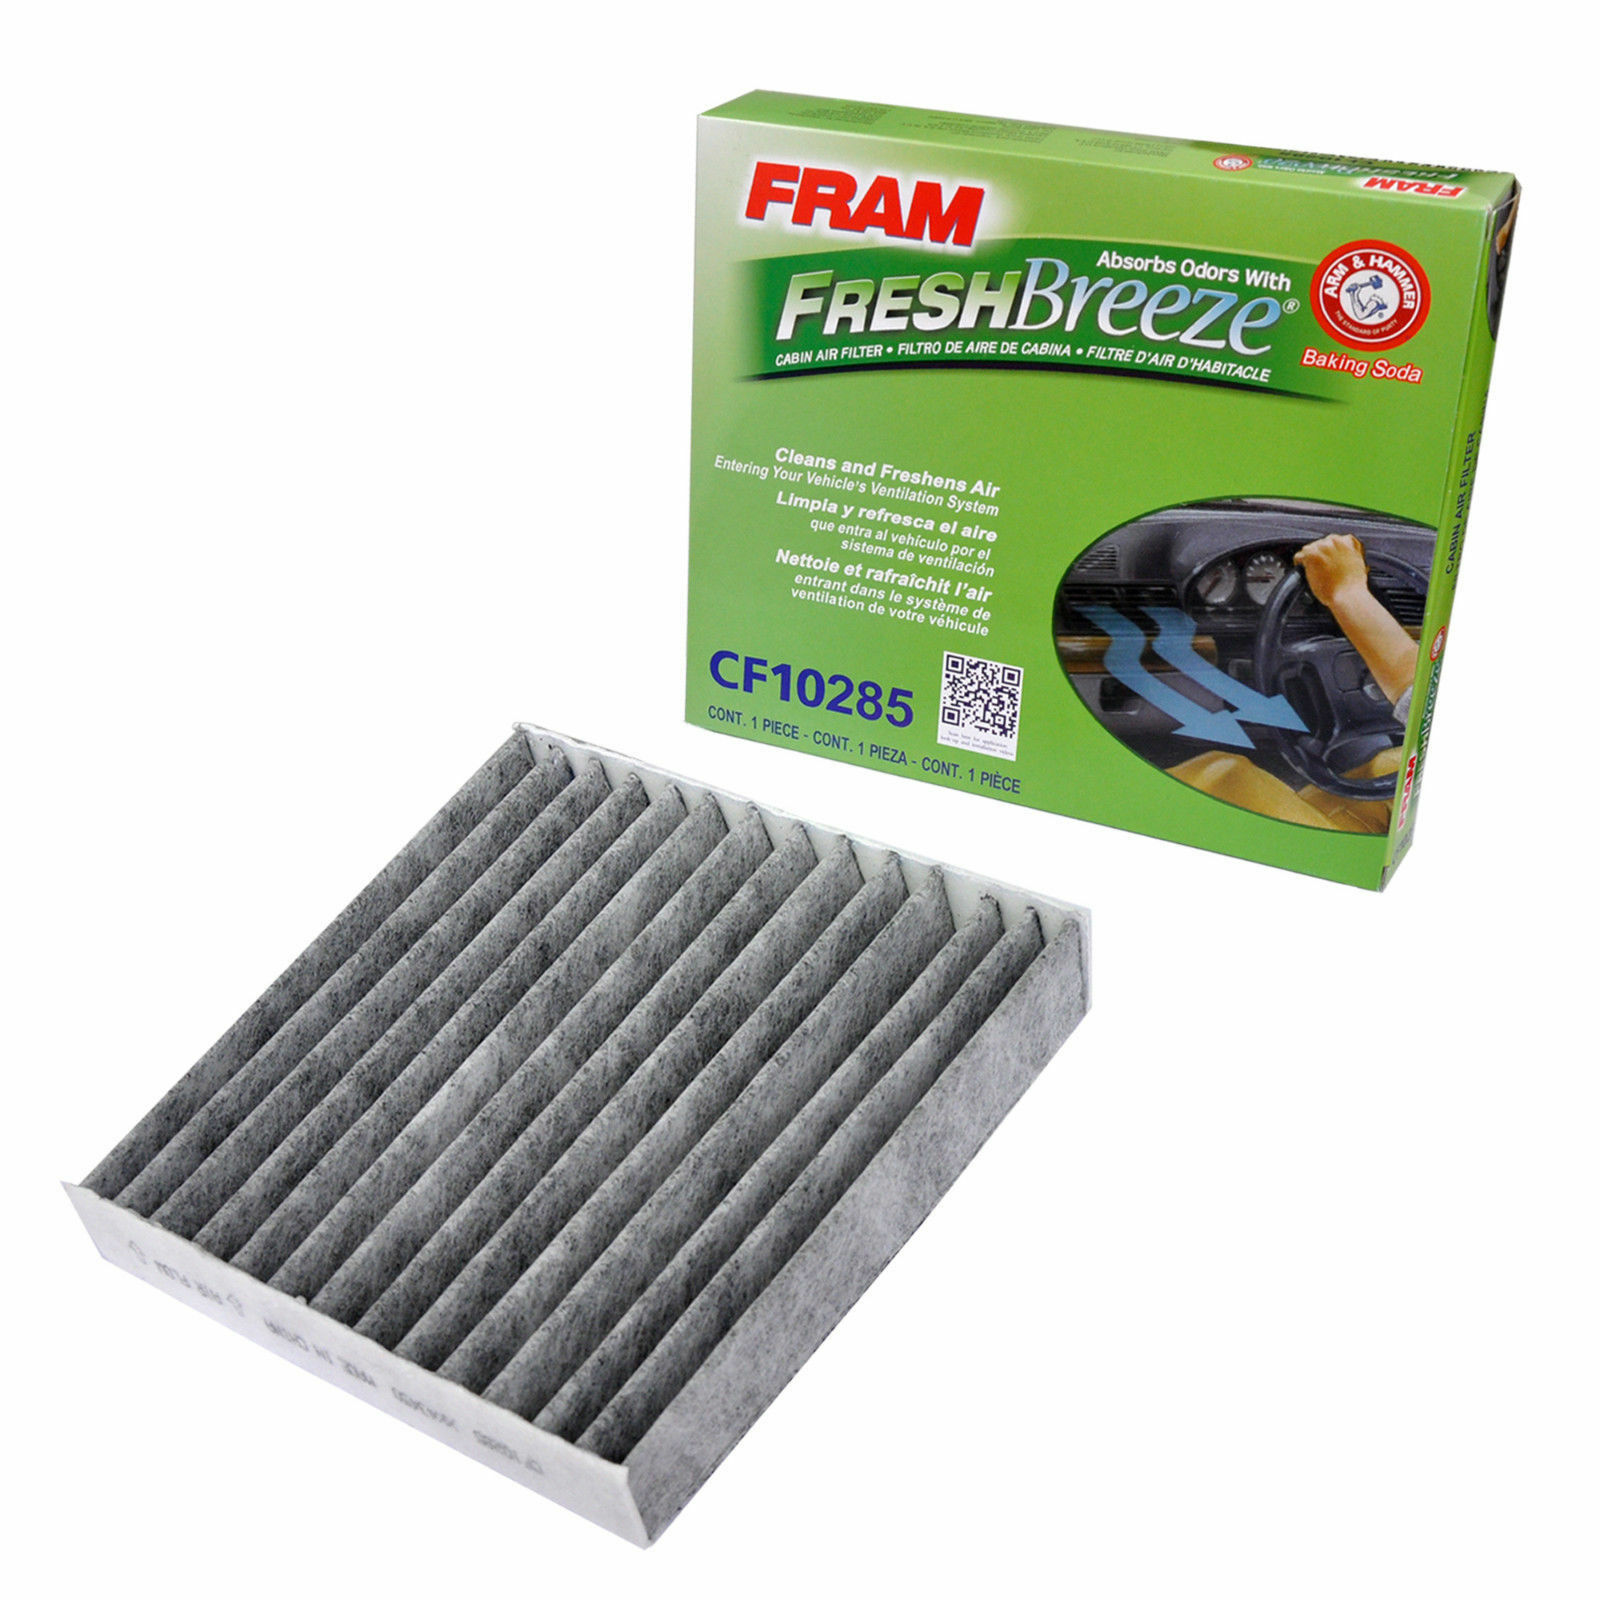 FRAM CF10285 Fresh Breeze Cabin Air Filter with Arm & Hammer NEW